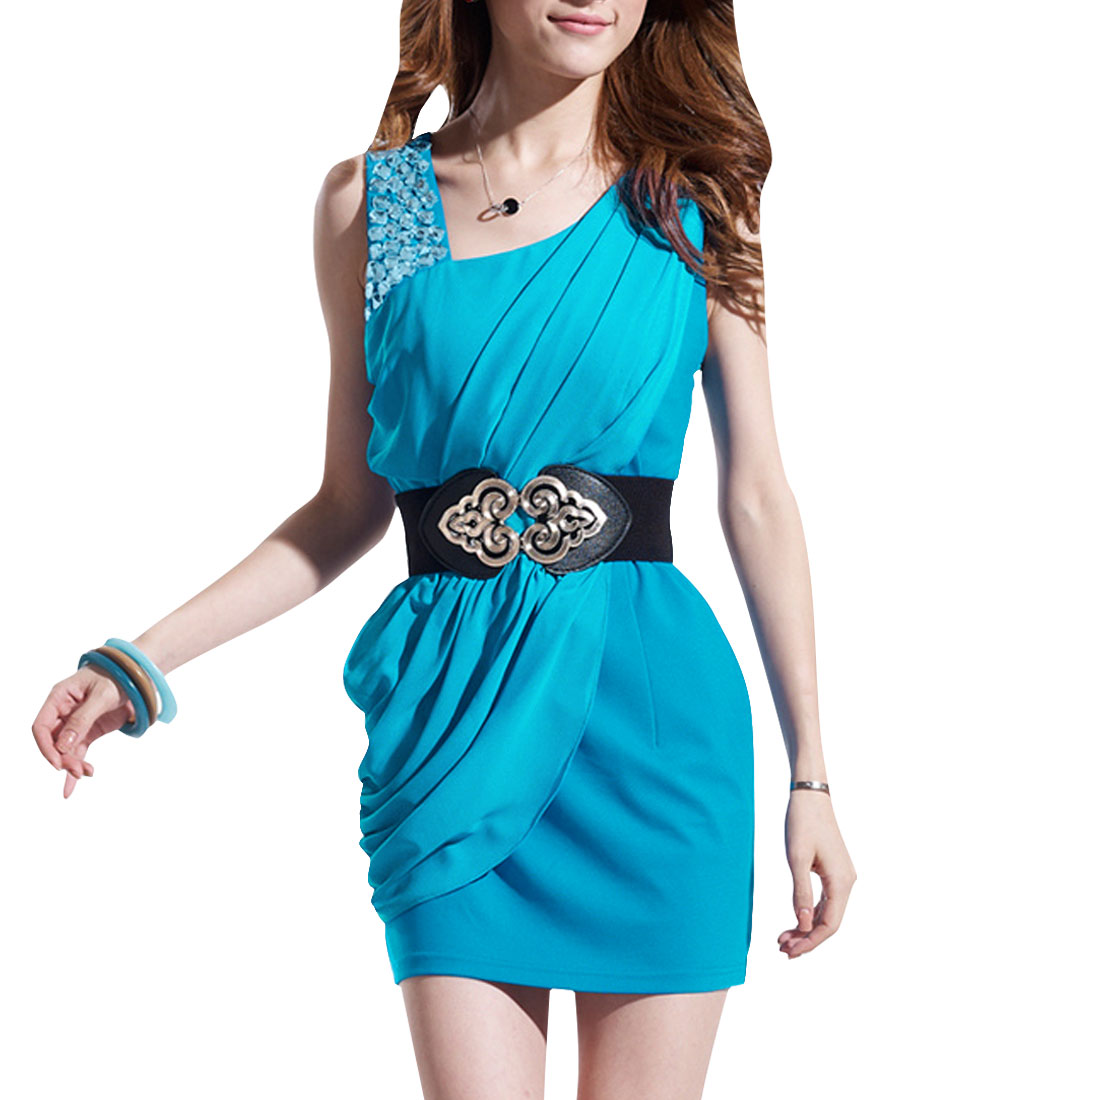 Women Sleeveless Rhinestone Decor Sheath Dress Blue XS